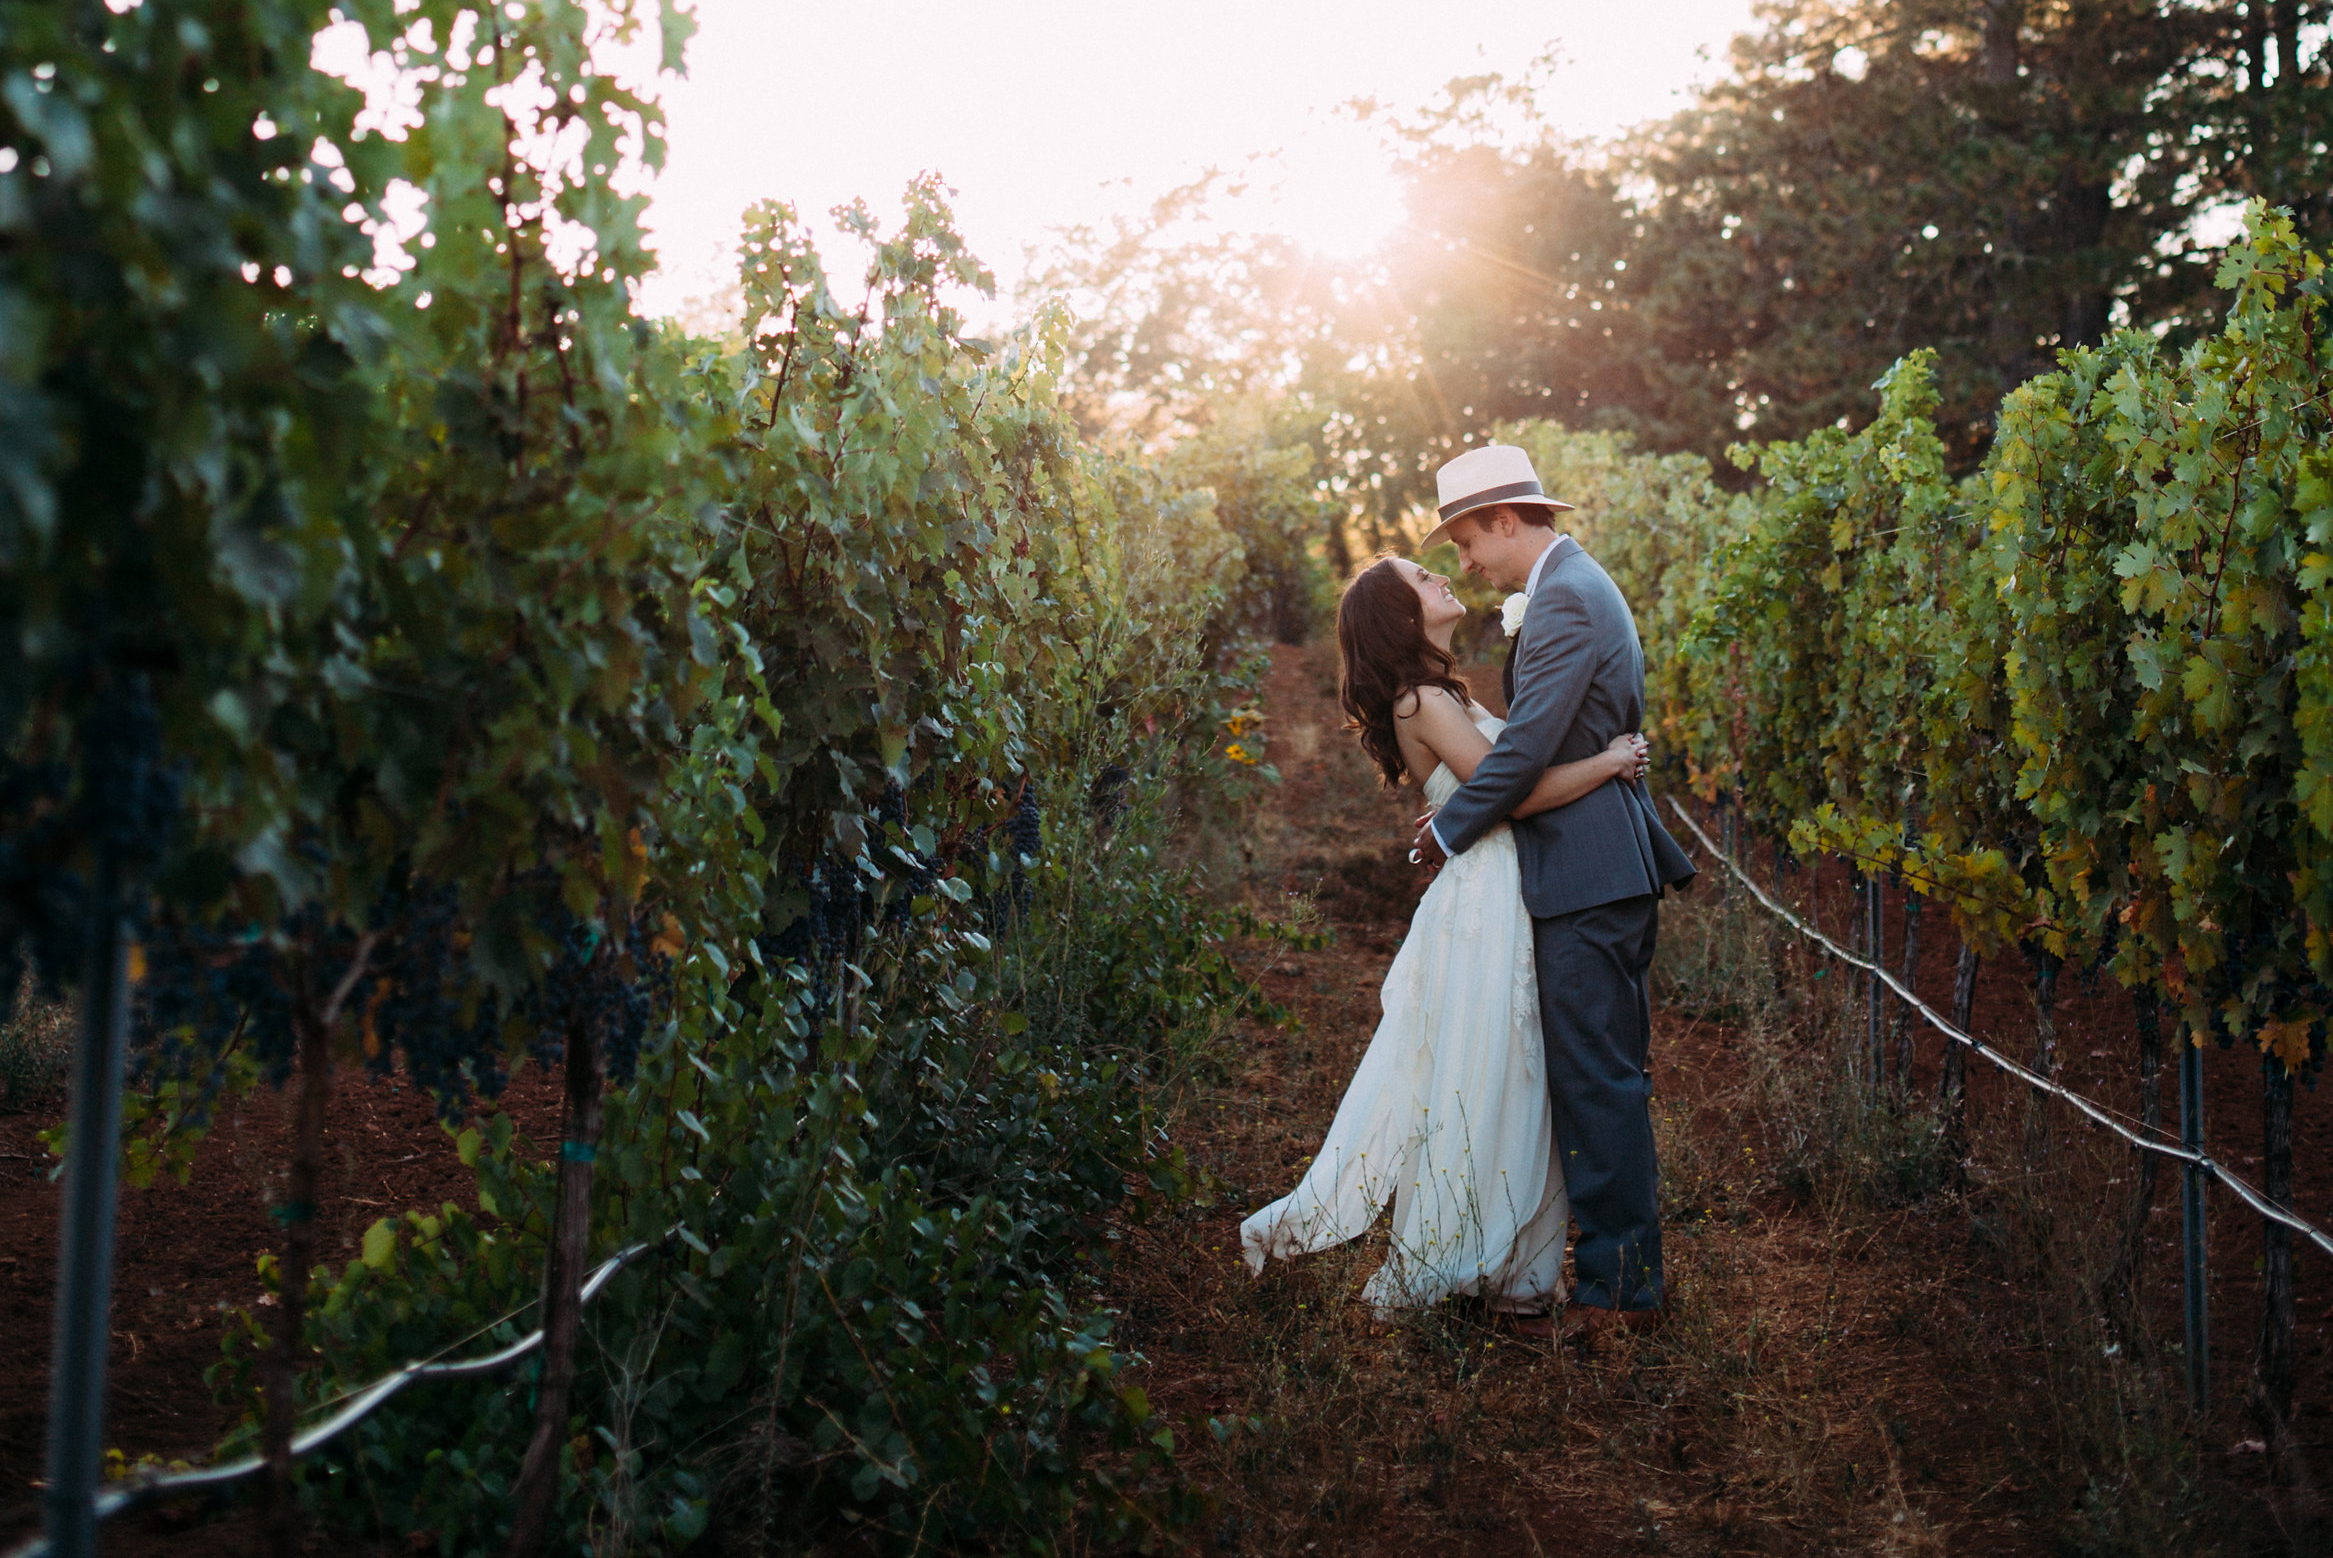 Mr + Mrs Henry :: Married | Angwin CA